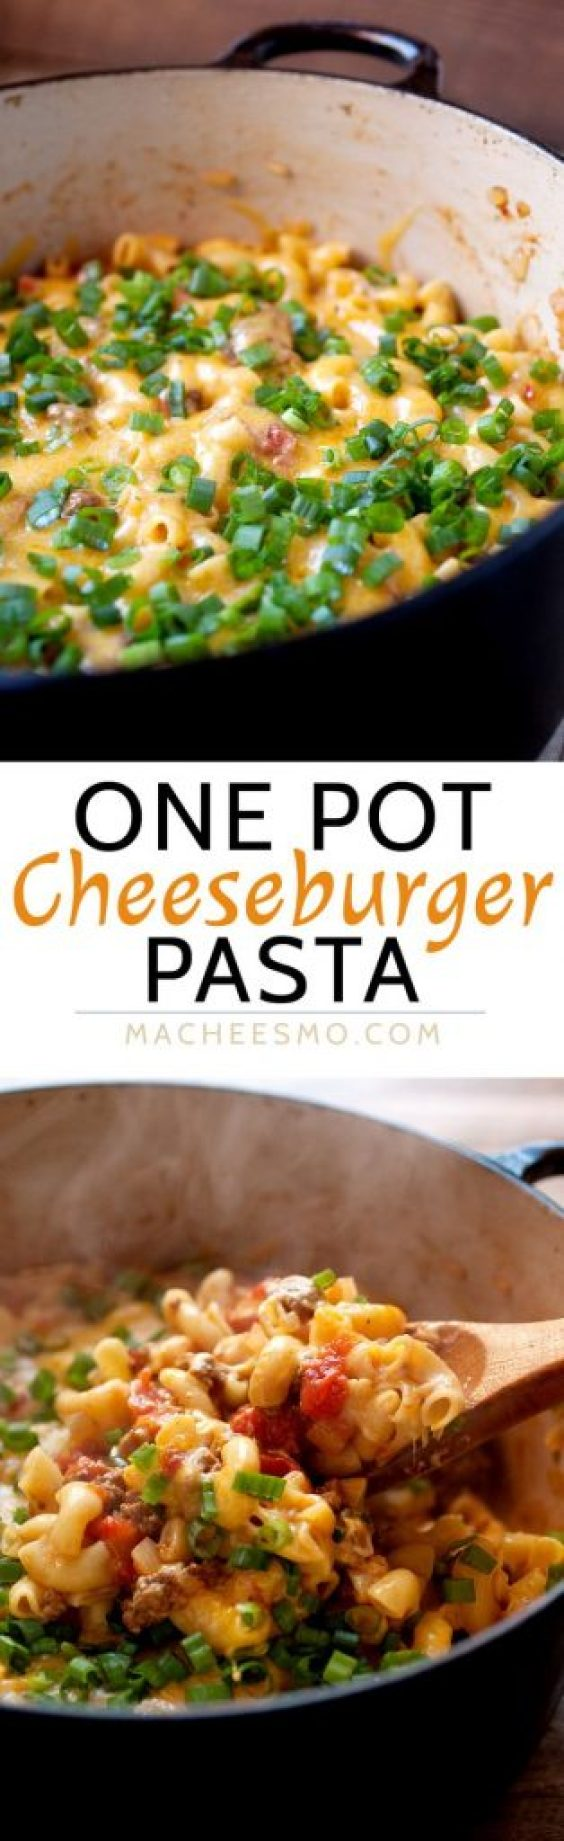 One Pot Cheeseburger Pasta {with a cheese lid!} Recipe | Macheesmo - The Best Easy One Pot Pasta Family Dinner Recipes